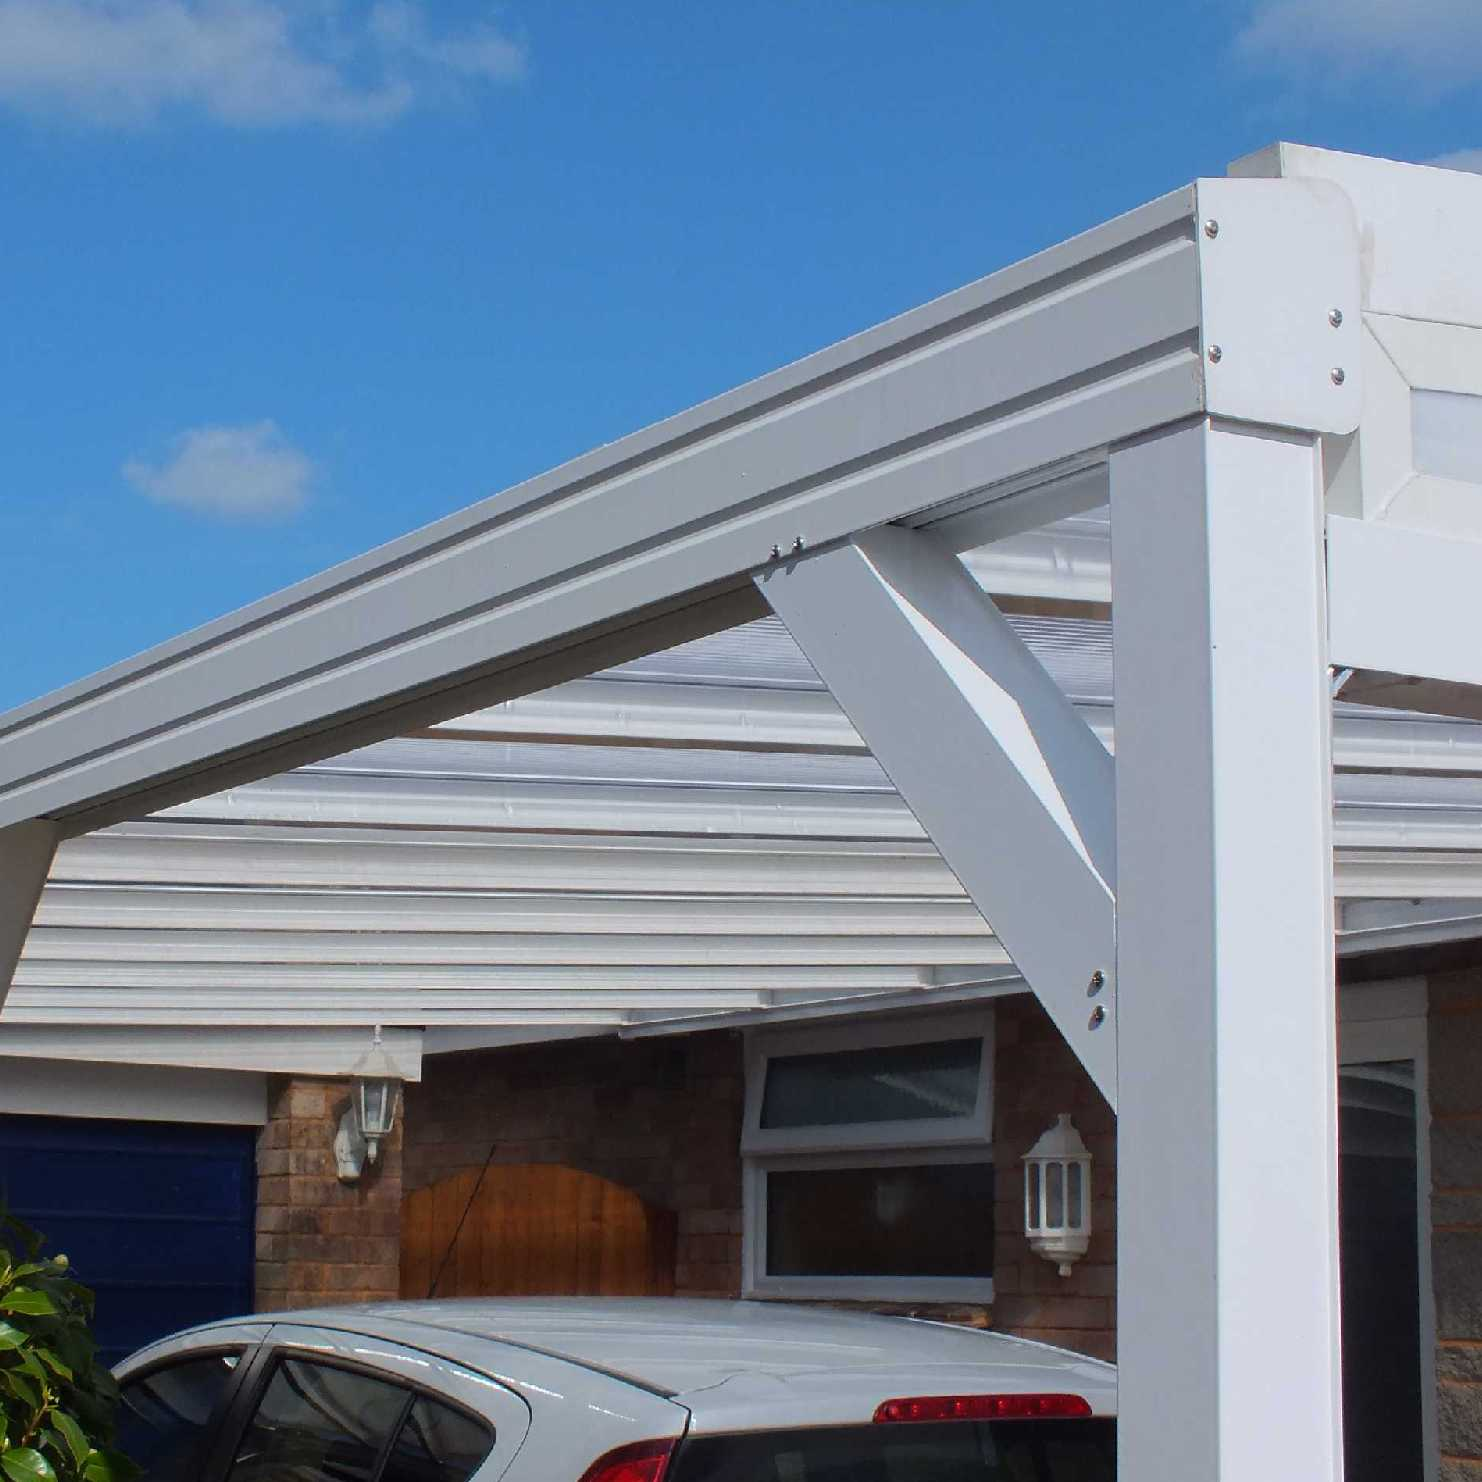 Great deals on Omega Smart White Lean-To Canopy with 16mm Polycarbonate Glazing - 11.6m (W) x 1.5m (P), (5) Supporting Posts